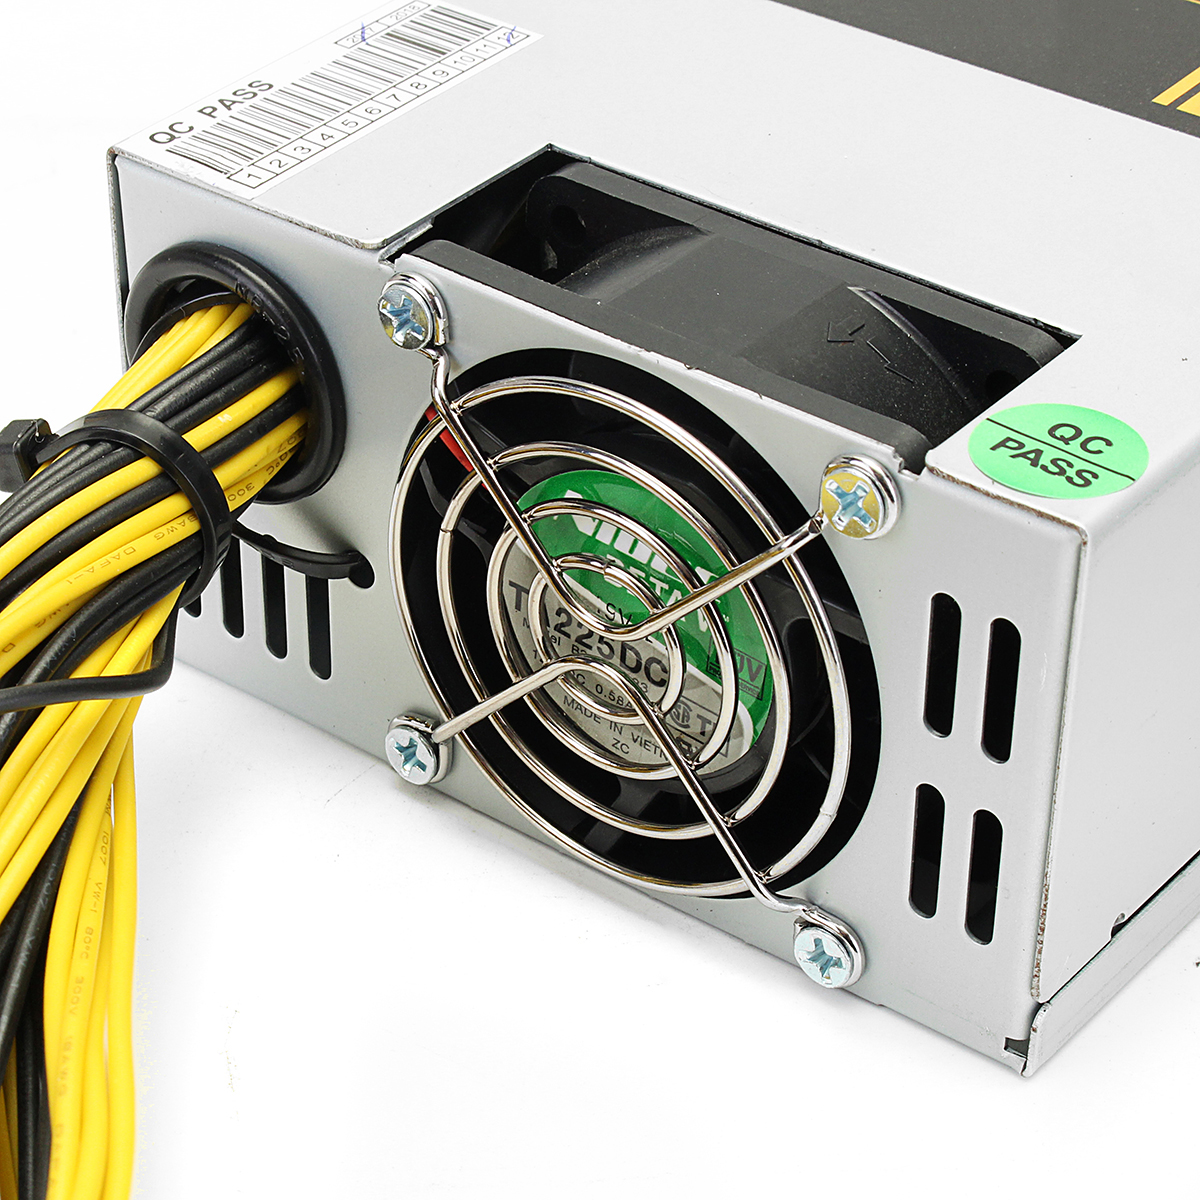 Antminer s9 paypal